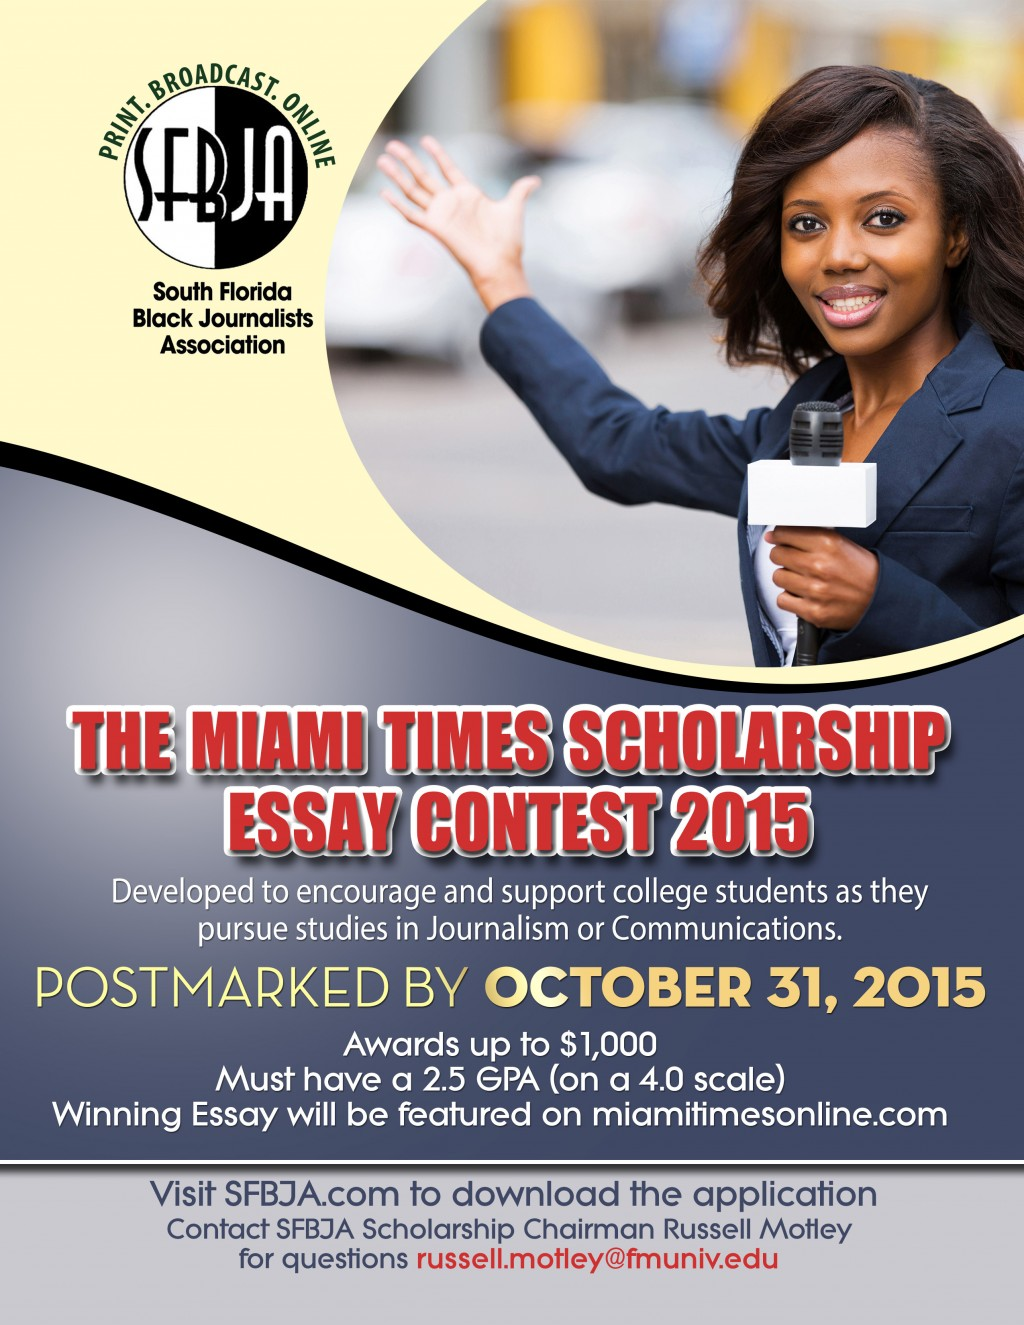 007 Essay Example Scholarship Contest Miami Times Flyer October31 Astounding Contests For High School Students 2019 Middle Large